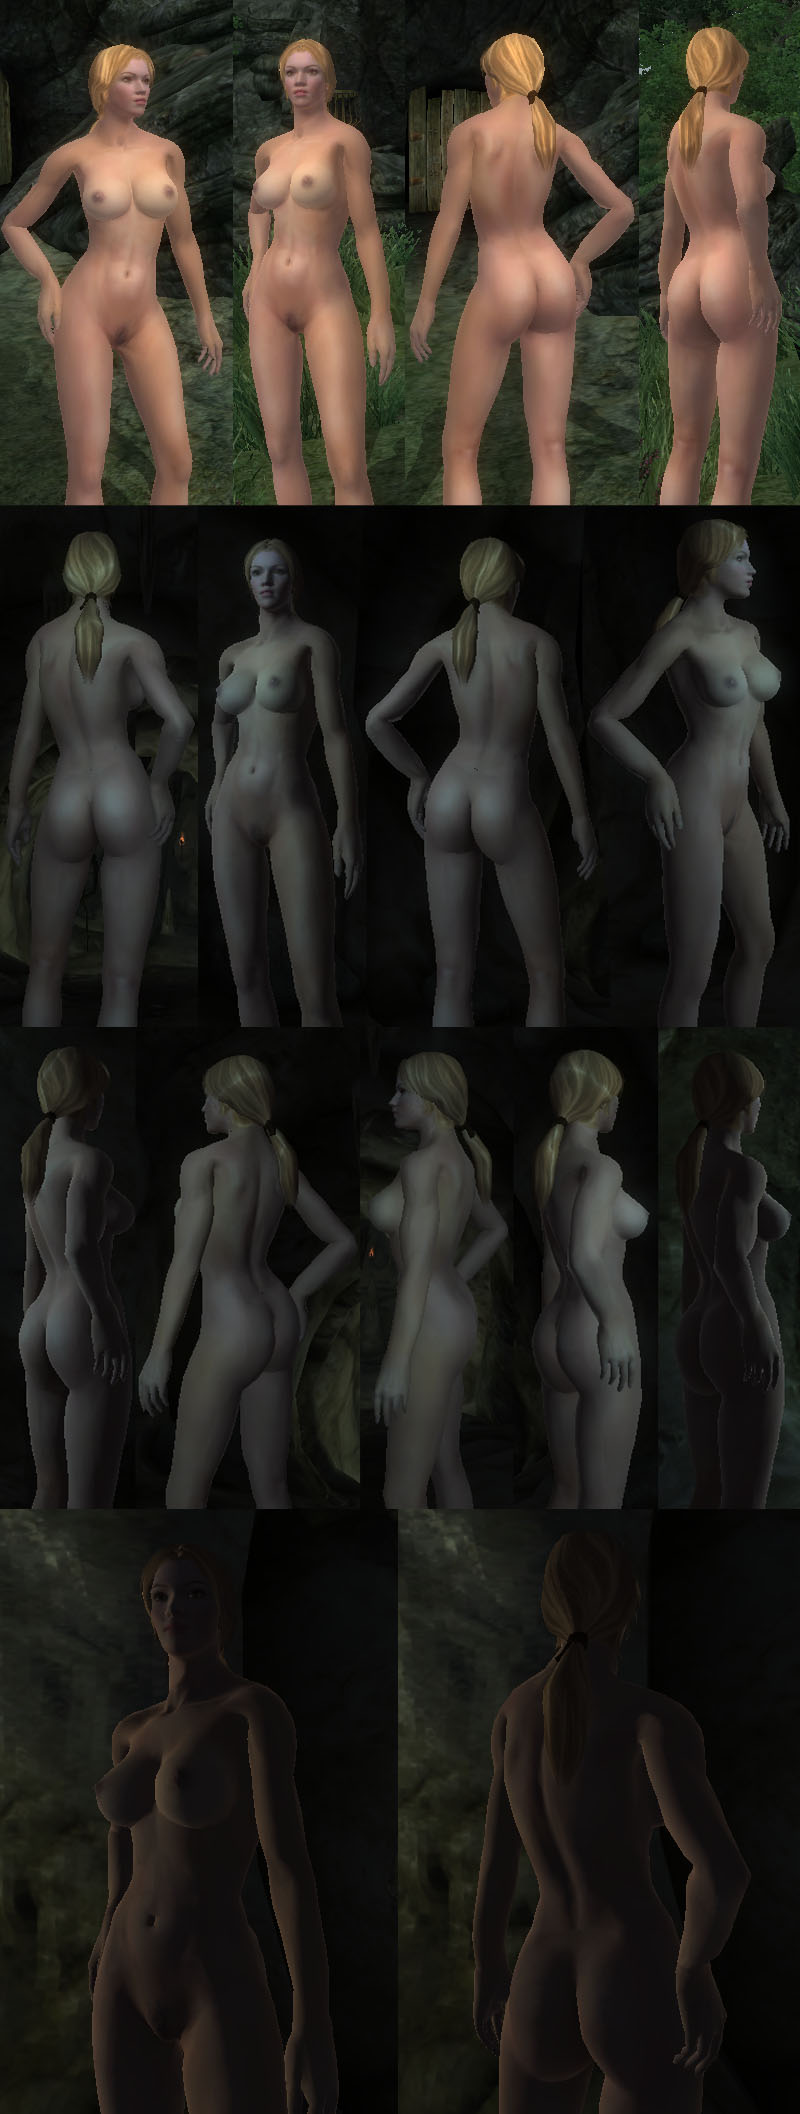 girl from oblivion naked